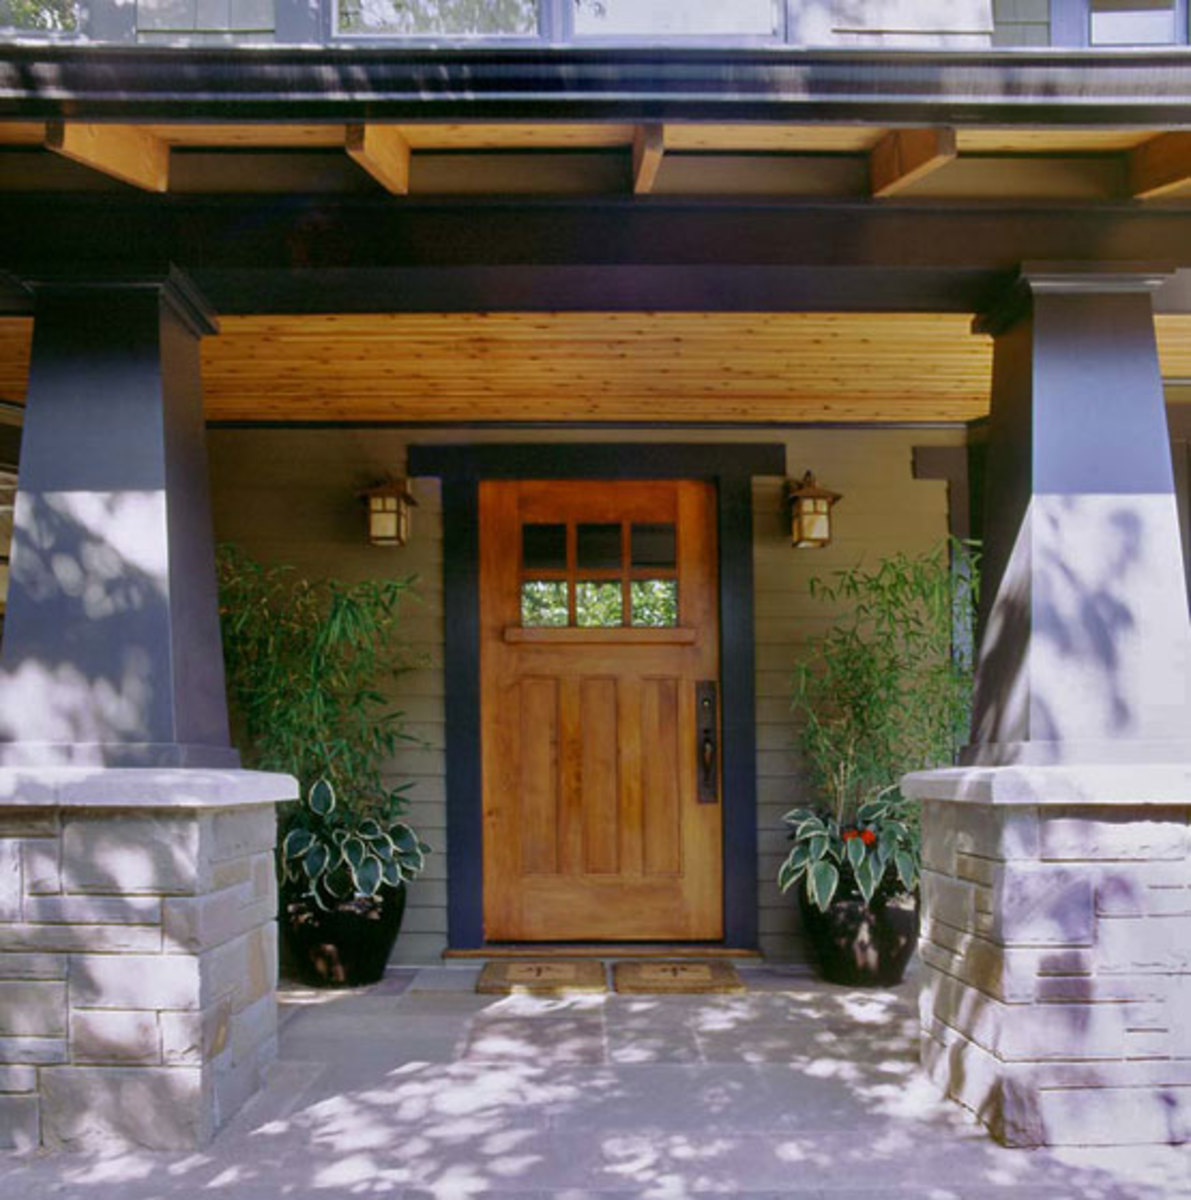 House re imagined craftsman style interiors in a 1969 - Arts and crafts home interior design ...